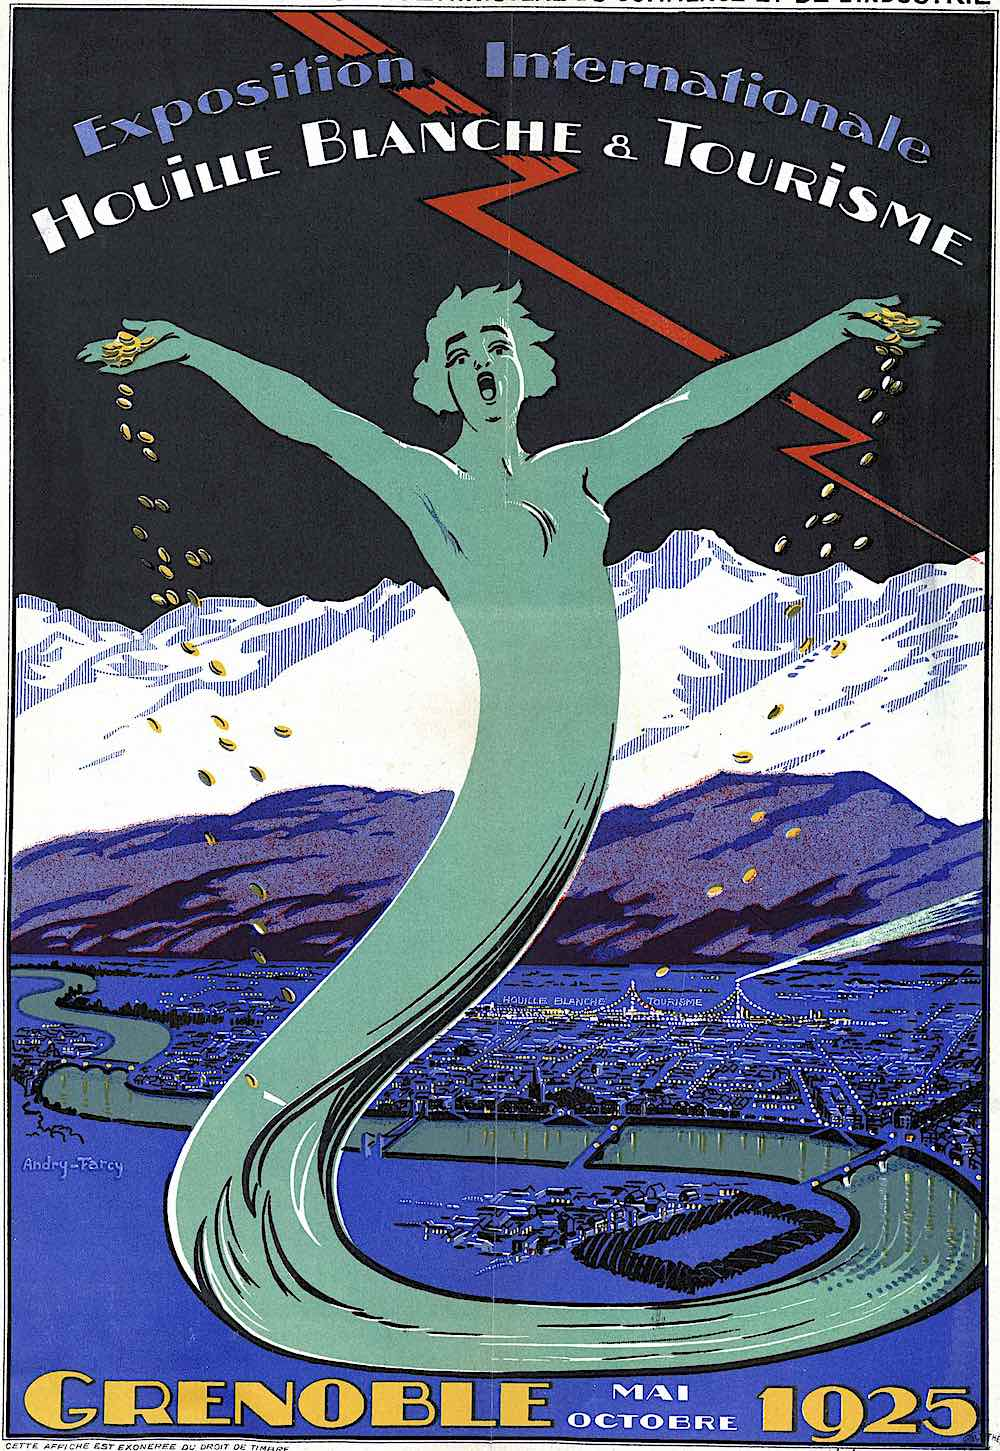 a 1925 poster for Grenoble Exposition Internationale